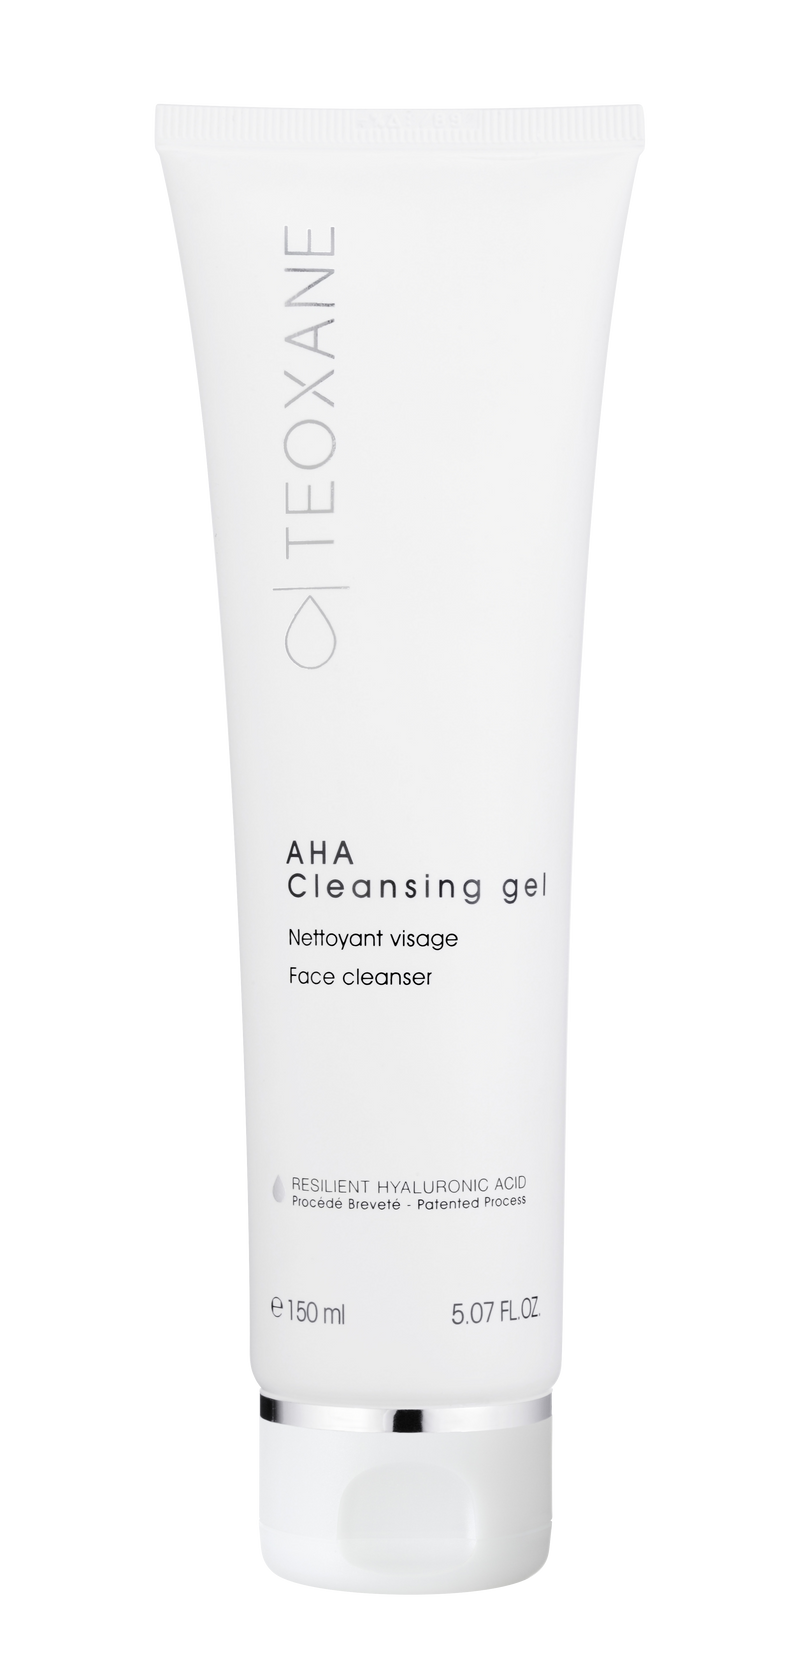 aha-cleansing-gel